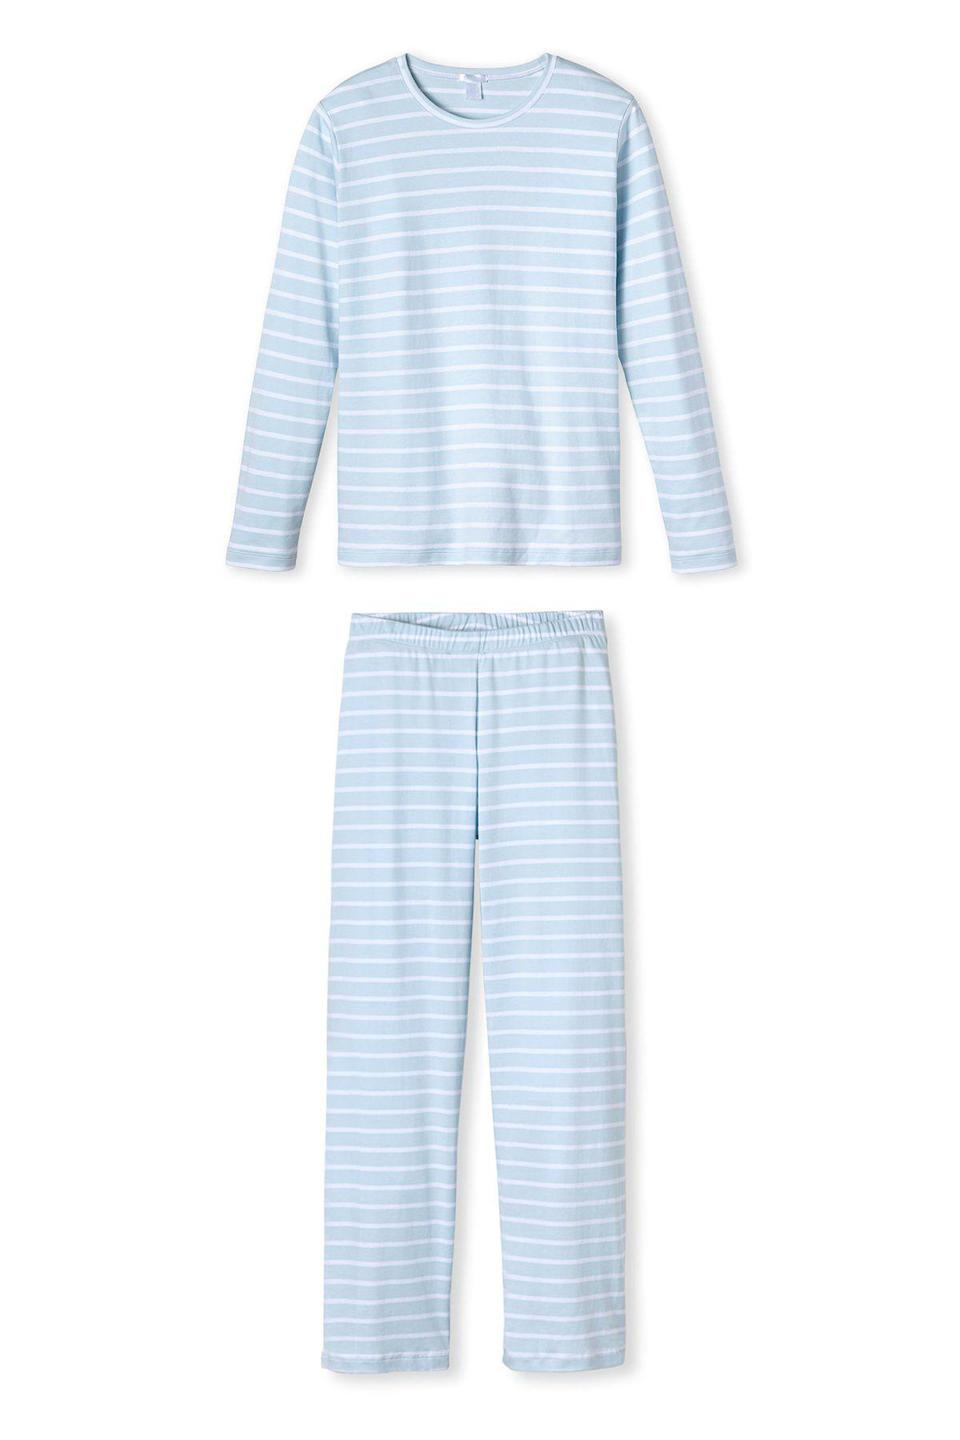 """<p>lakepajamas.com</p><p><strong>$114.00</strong></p><p><a href=""""https://go.redirectingat.com?id=74968X1596630&url=https%3A%2F%2Flakepajamas.com%2Fcollections%2Fnew-arrivals%2Fproducts%2Fwinter-long-long-weekend-set&sref=https%3A%2F%2Fwww.countryliving.com%2Fshopping%2Fgifts%2Fg25323076%2Fnew-mom-gifts%2F"""" rel=""""nofollow noopener"""" target=""""_blank"""" data-ylk=""""slk:Shop Now"""" class=""""link rapid-noclick-resp"""">Shop Now</a></p><p>This striped PJ set is the only new outfit mom needs to complete her weekend. </p>"""